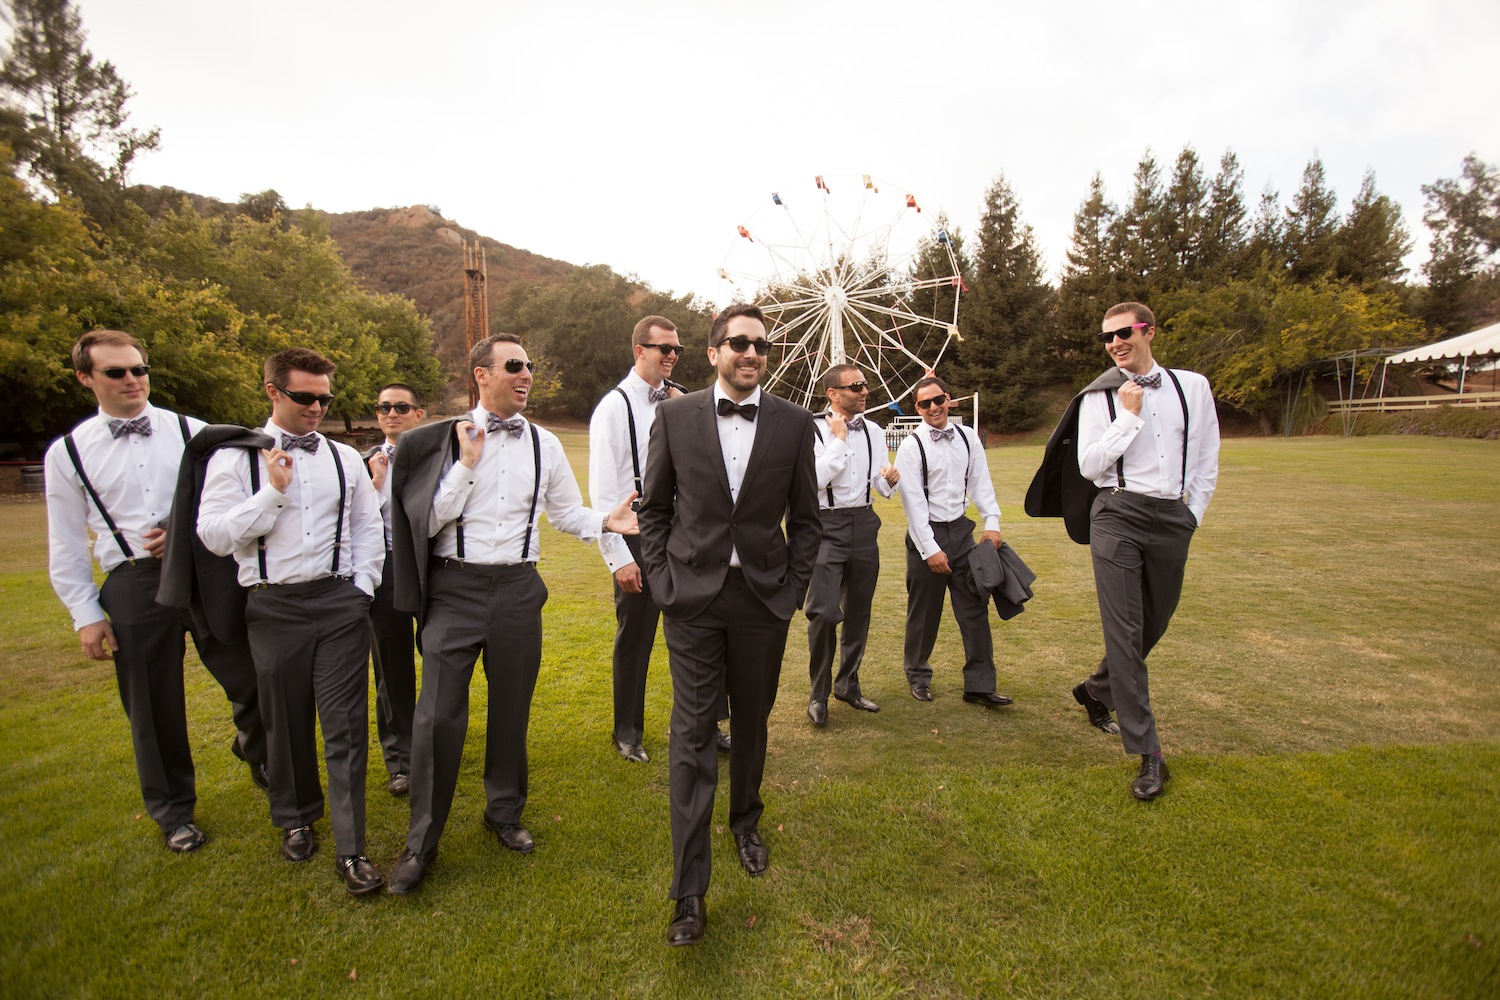 groom and groomsmen wedding party photography ideas